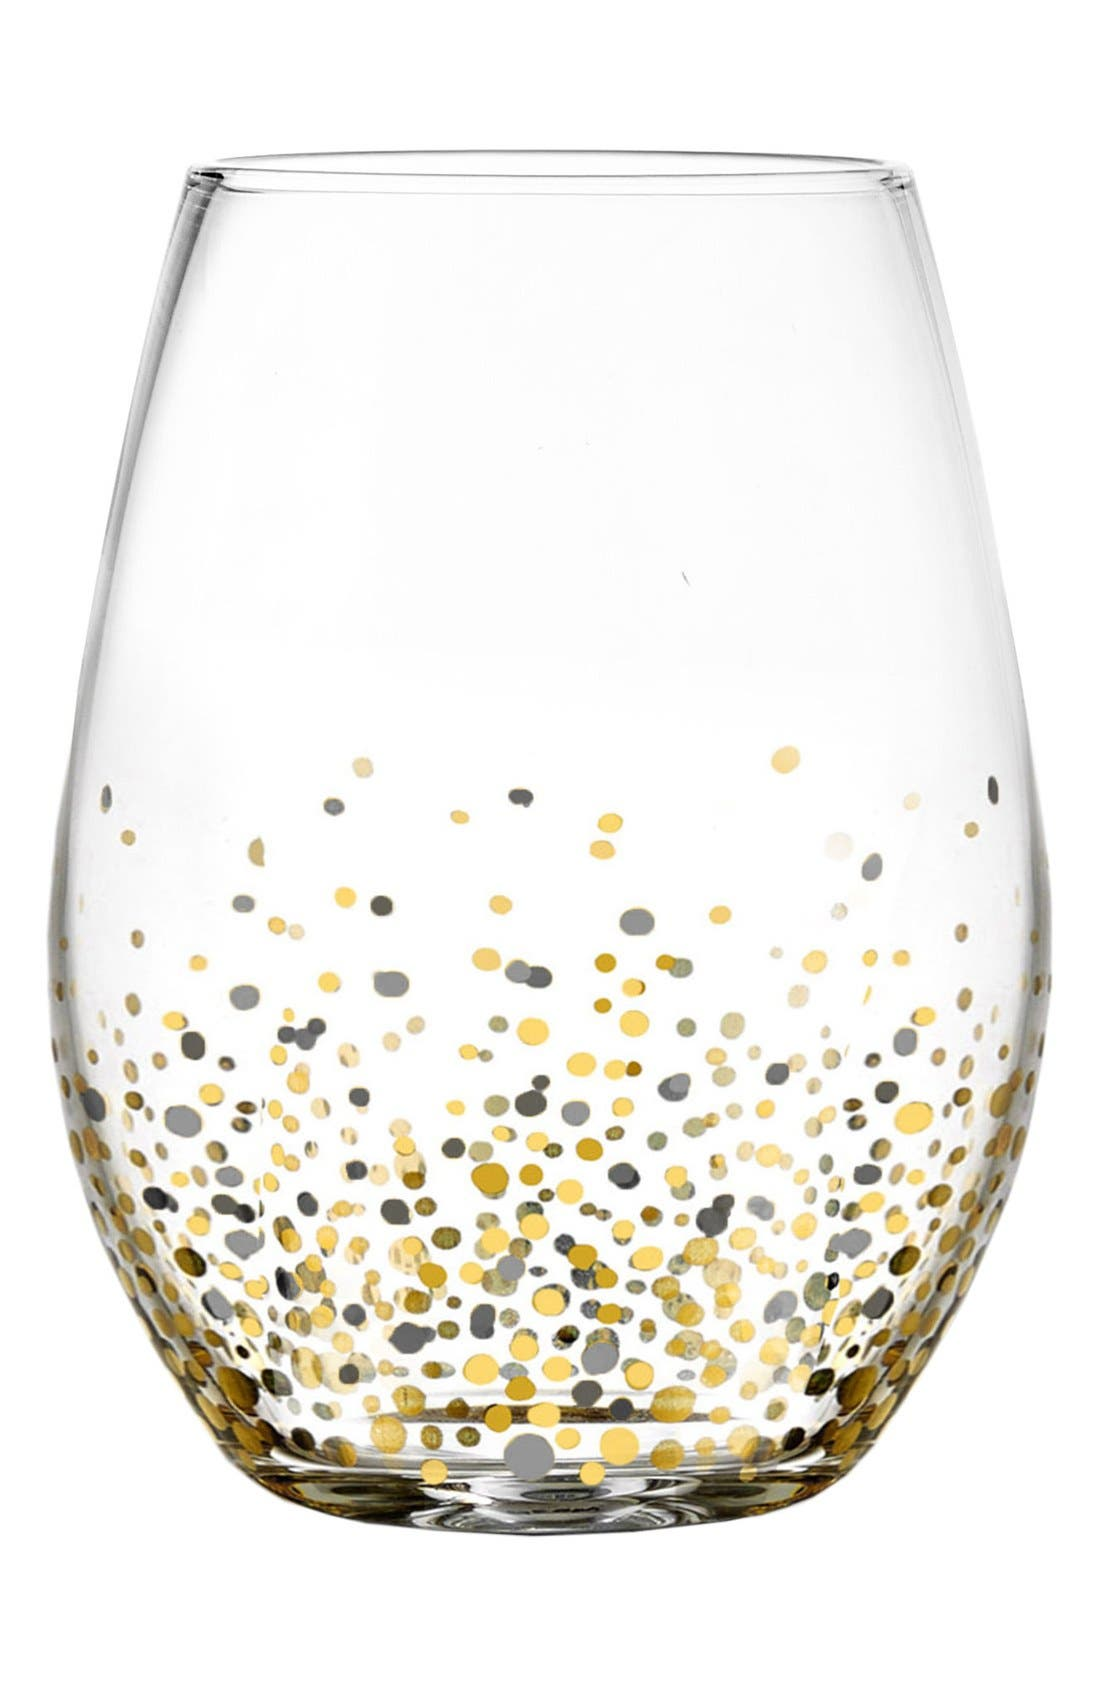 Main Image - American Atelier Set of 4 Confetti Stemless Wine Glasses